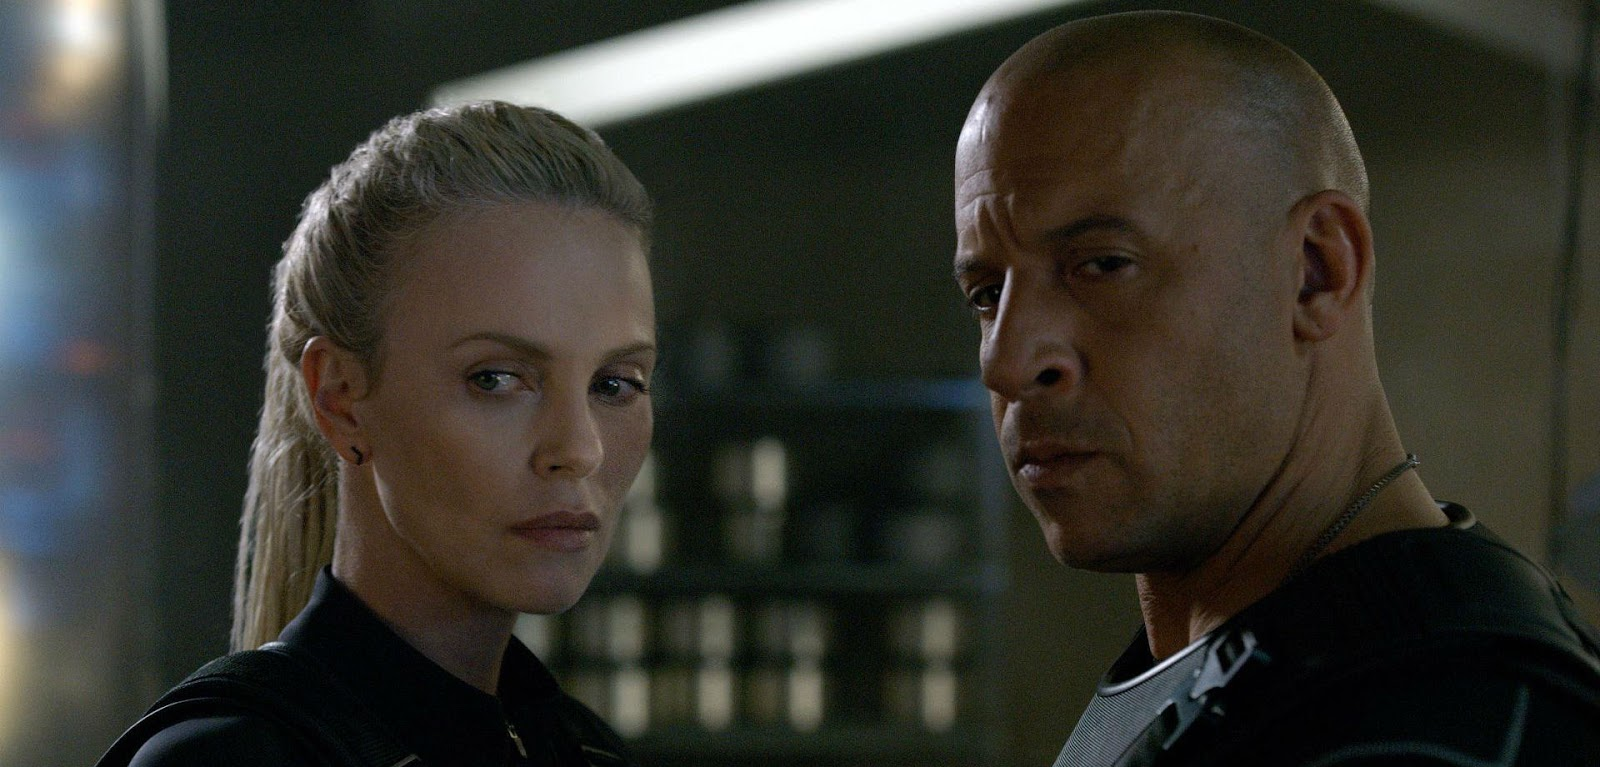 MOVIES: The Fate of the Furious - Review